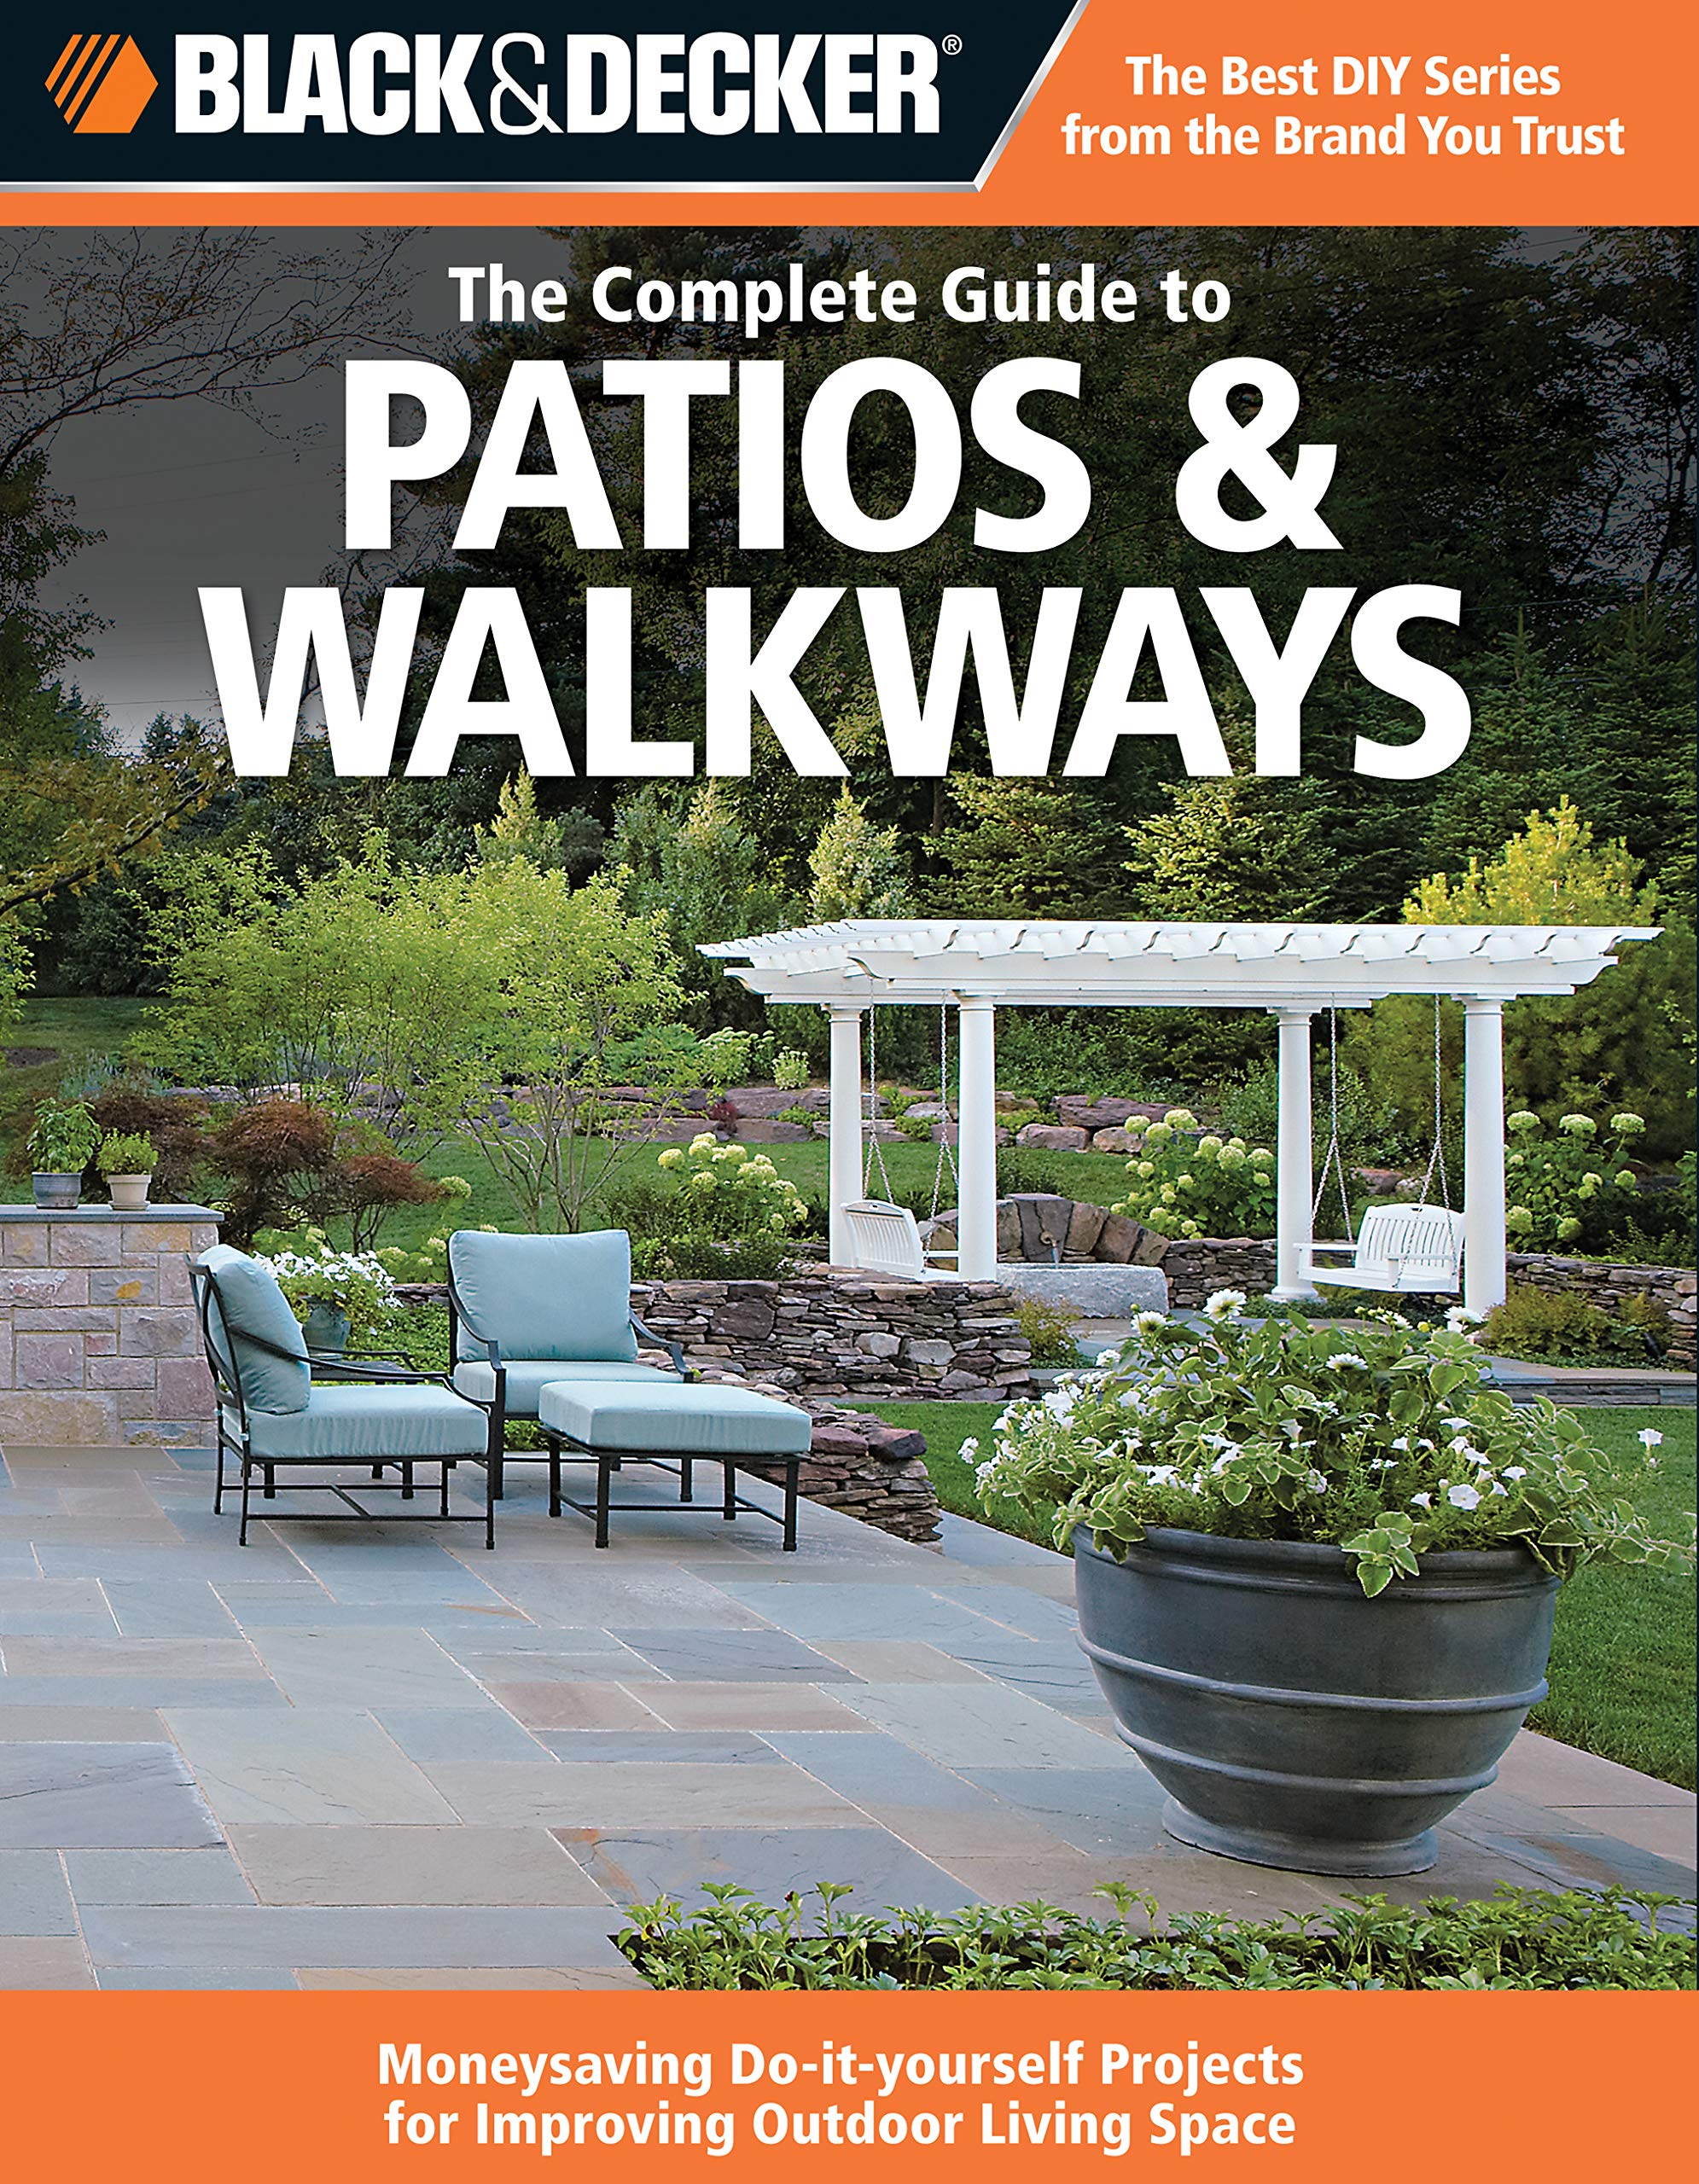 Black decker the complete guide to patios walkways money saving black decker the complete guide to patios walkways money saving do it yourself projects for improving outdoor living space black decker complete solutioingenieria Images